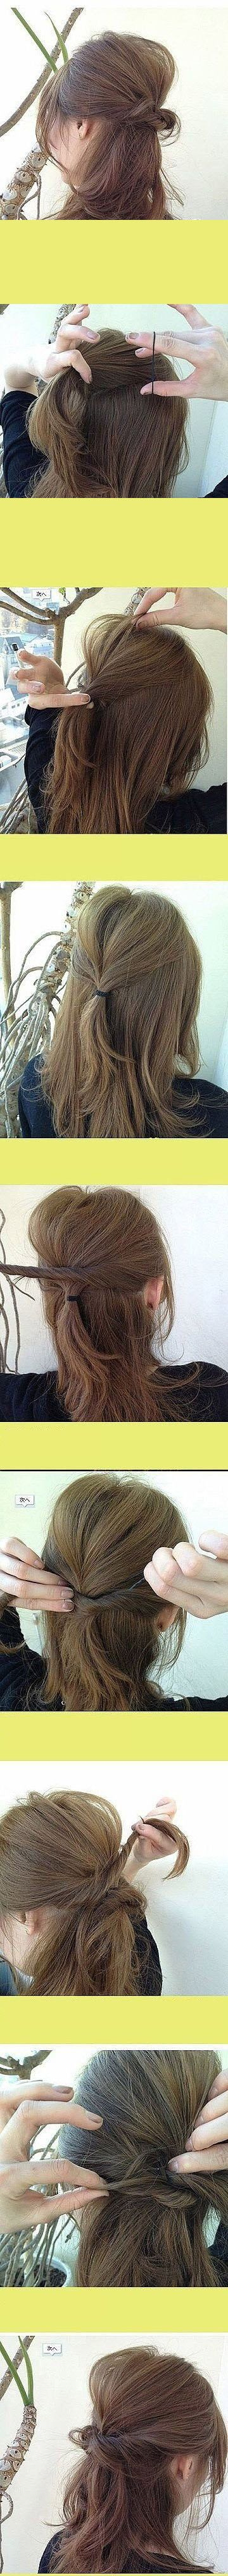 Beautiful Hair Tutorial   Click to see More Beauty Tutorials.